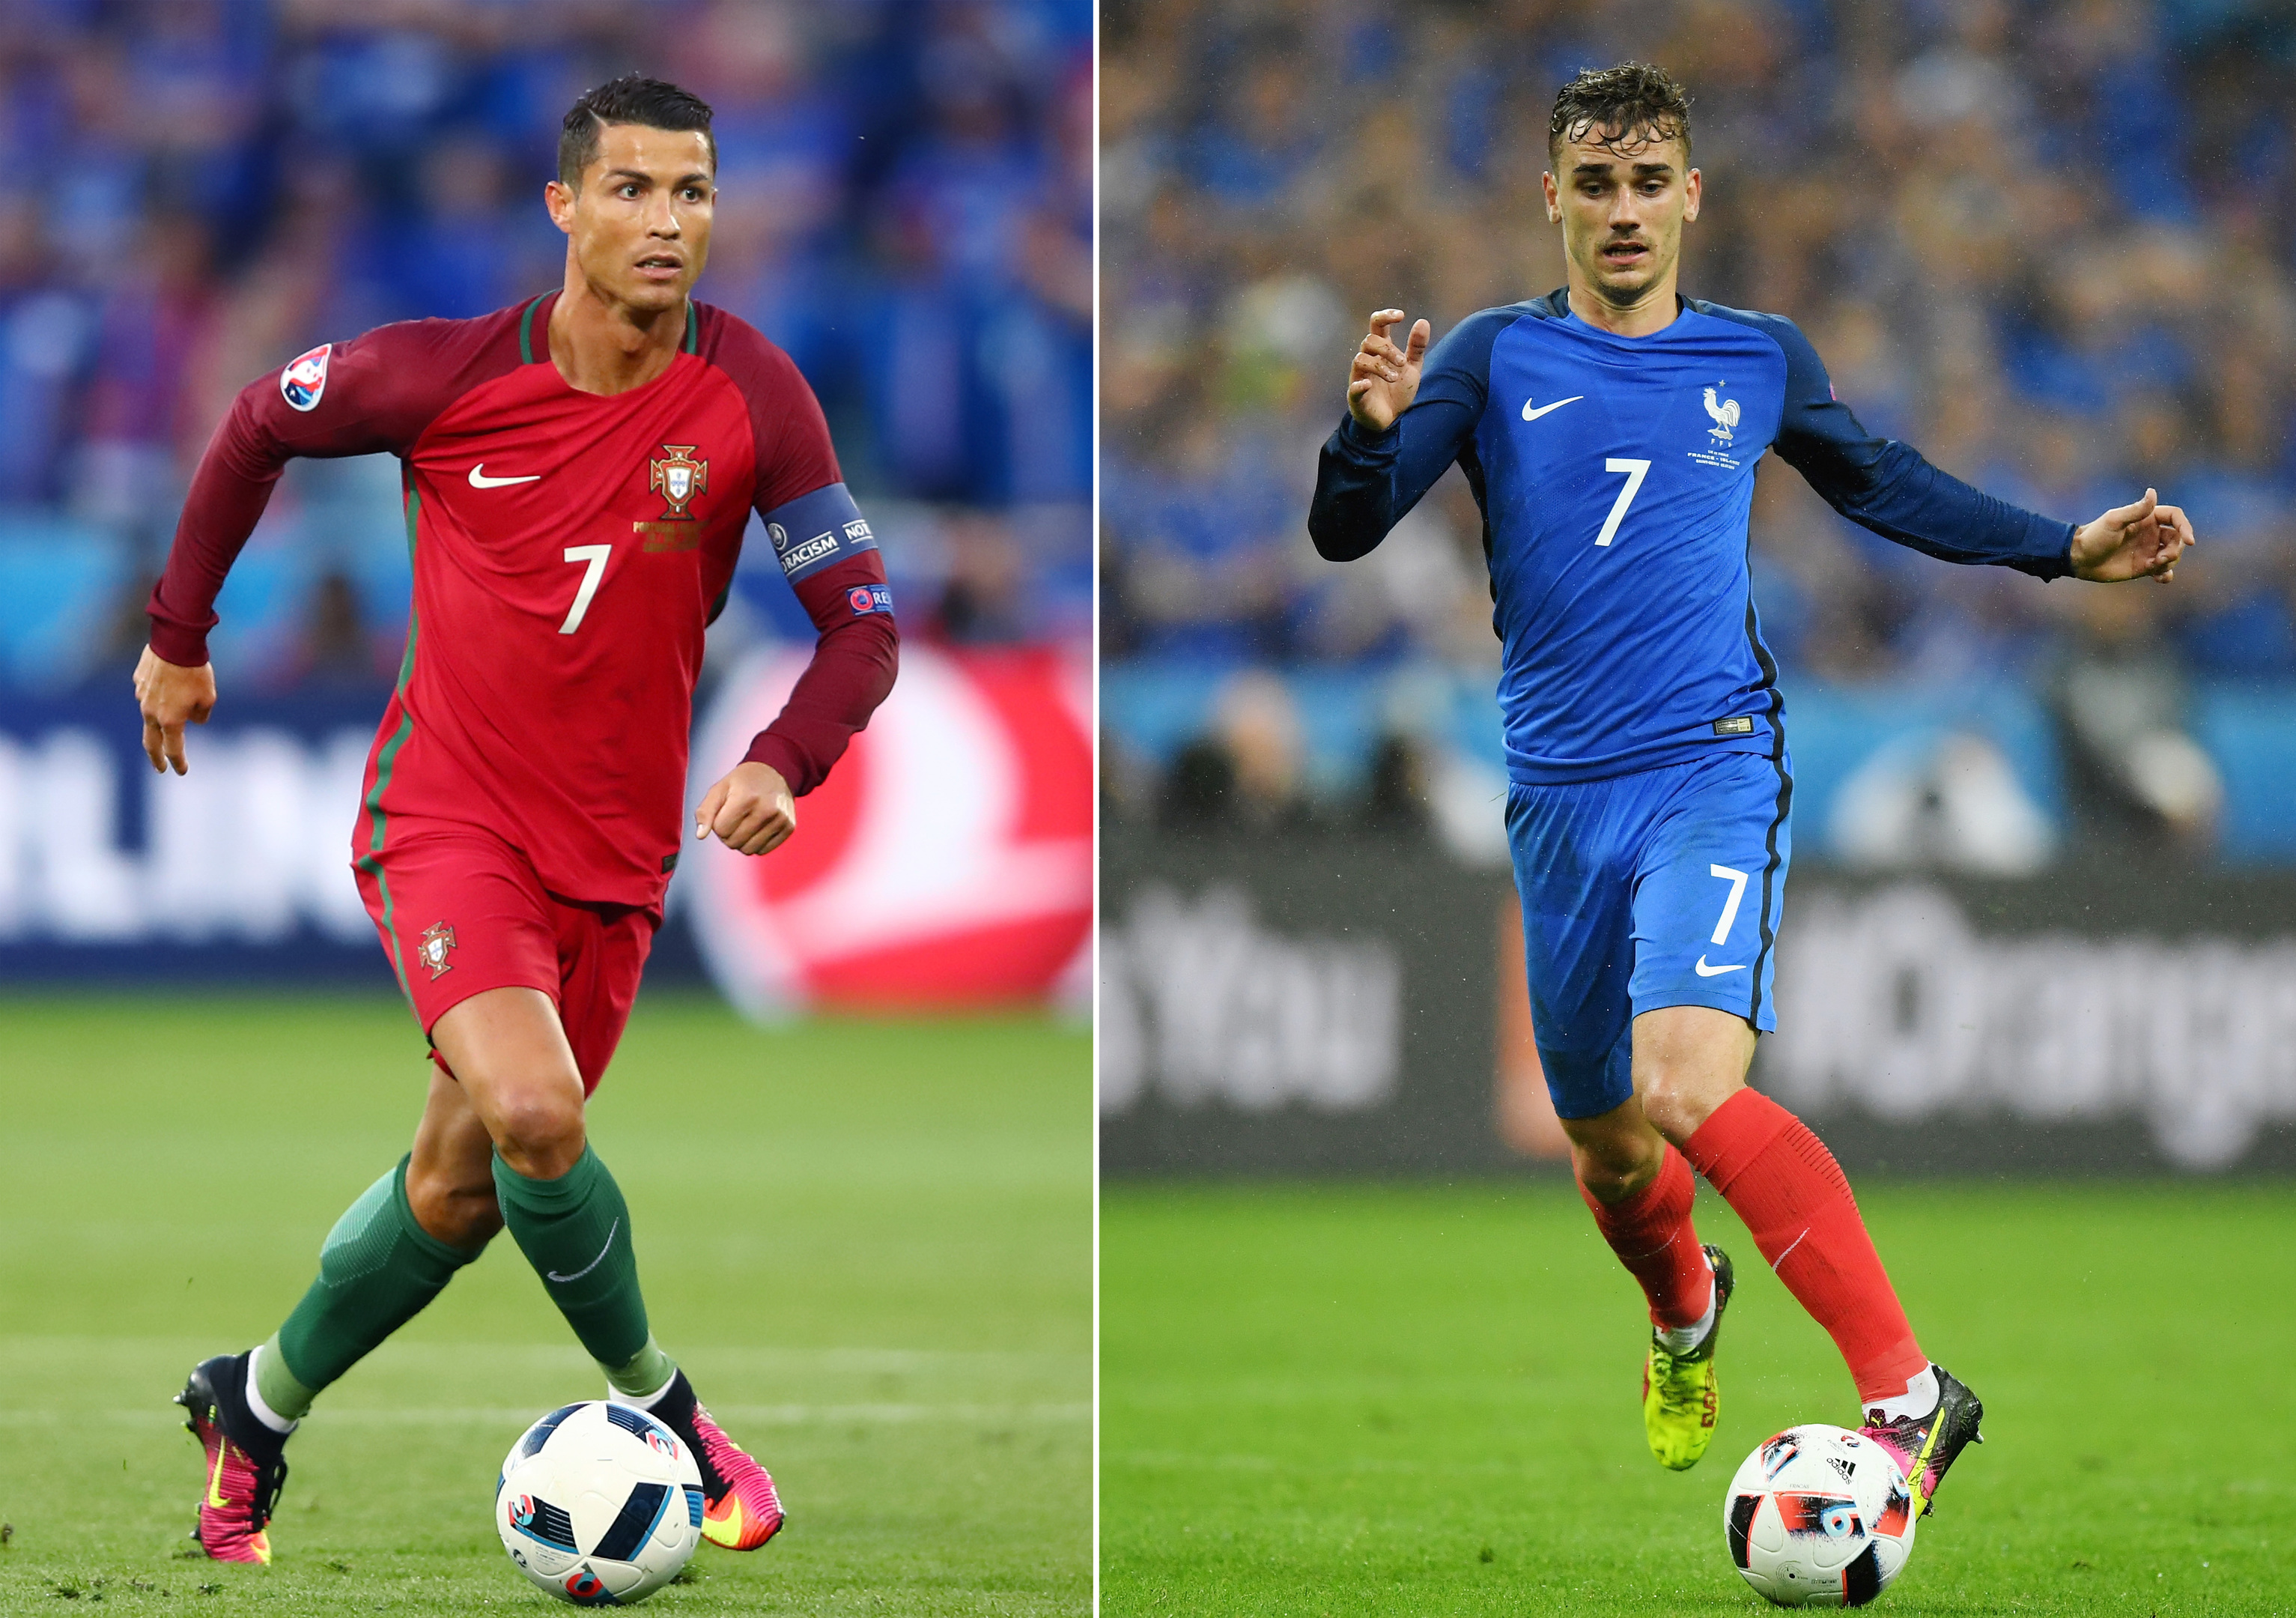 Cristiano Ronaldo of Portugal (L) and Antoine Griezmann of France. (Matthias Hangst/Getty Images)